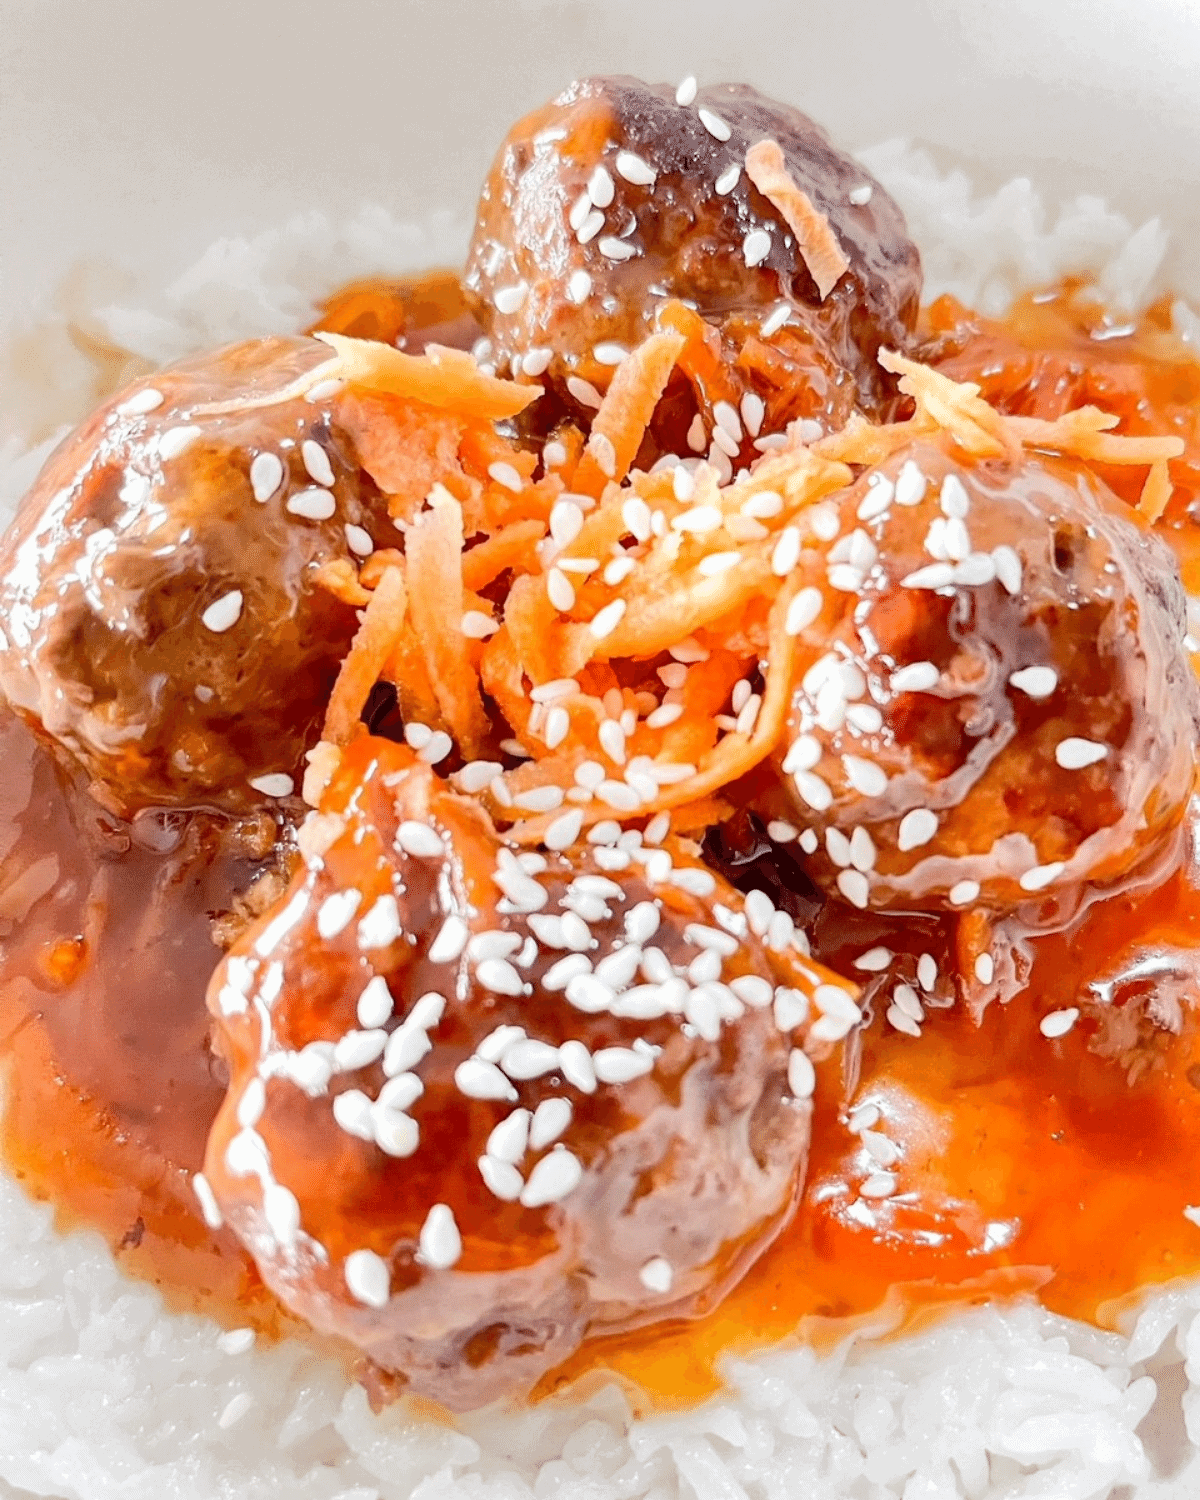 Closeup of venison meatballs in sweet and sour sauce, topped with shredded carrot and sesame seeds, on a bed of jasmine rice